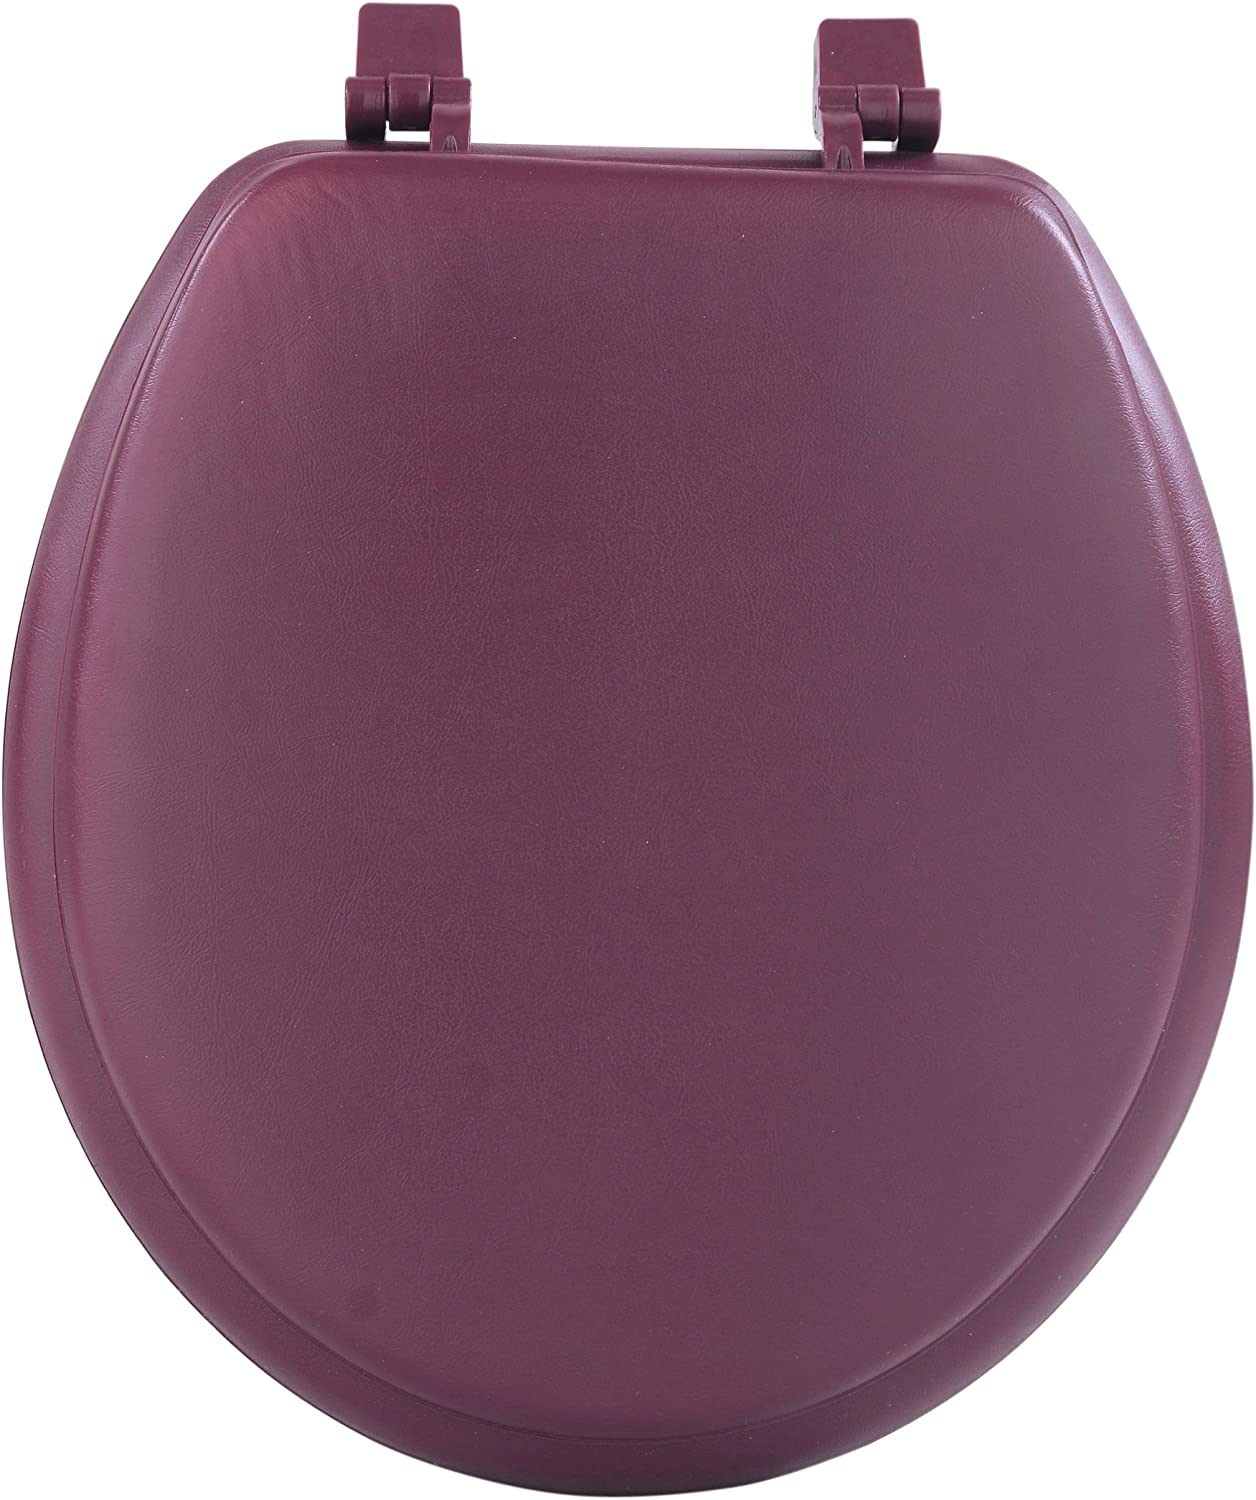 Achim Home Furnishings Burgundy TOVYSTBU04 17-Inch Fantasia Standard Toilet Seat, Soft